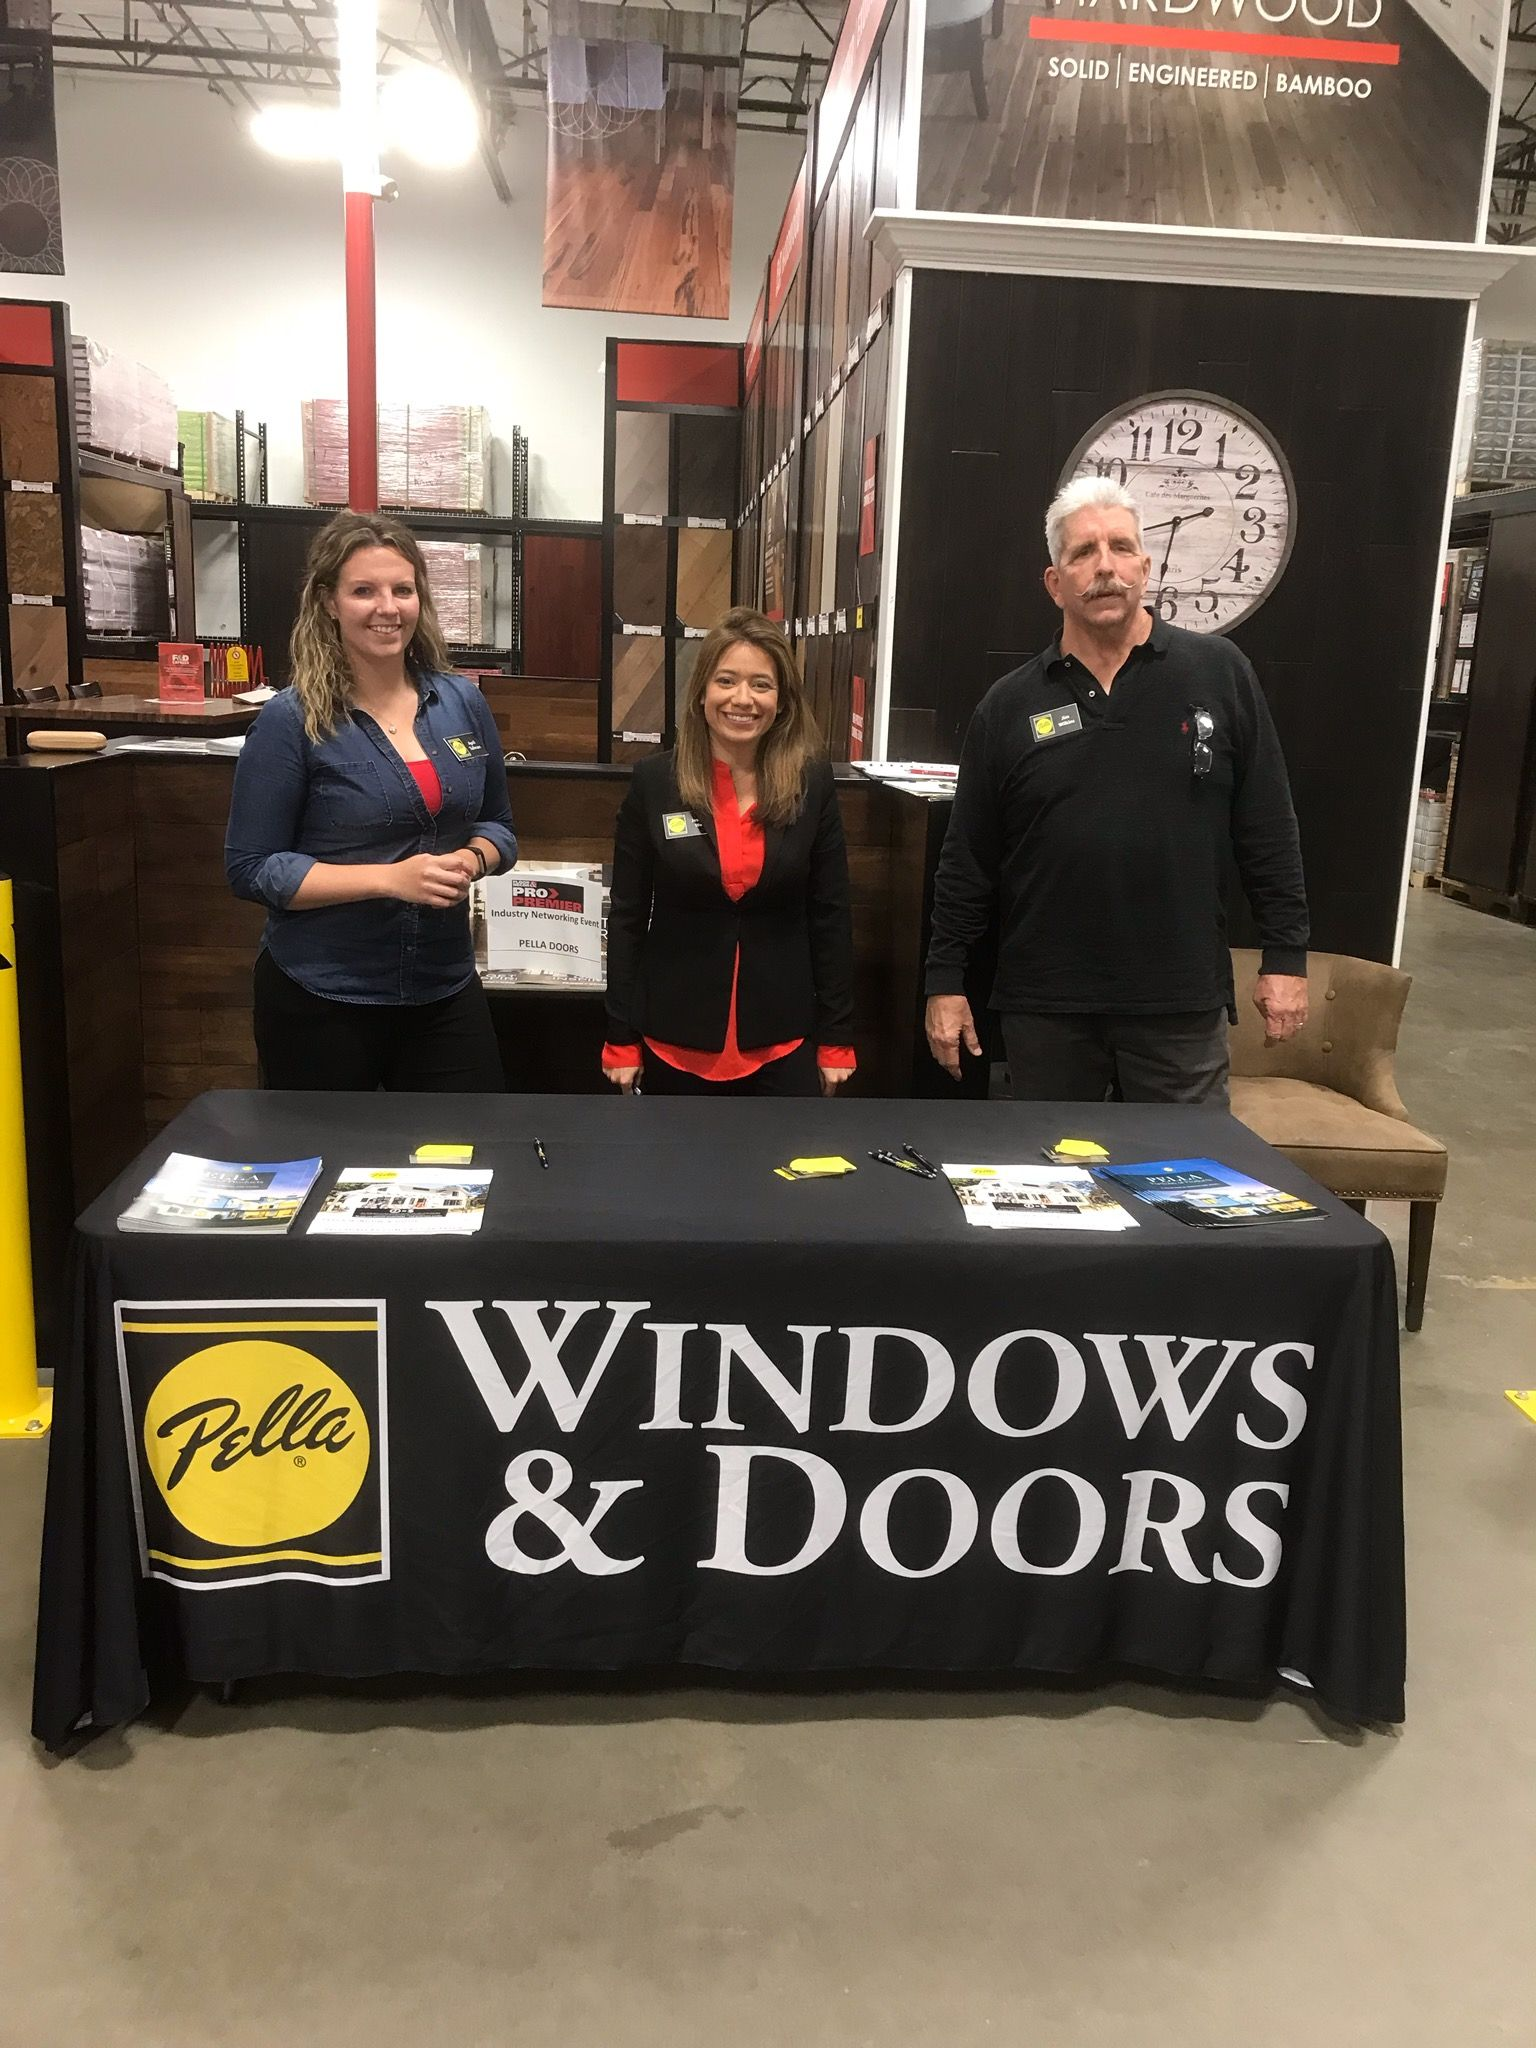 Our Pella Team At The Contractor Networking Event At The Floor Decor Showroom In Plano Representing Our Team Well Showroom Decor Pella Floor Decor